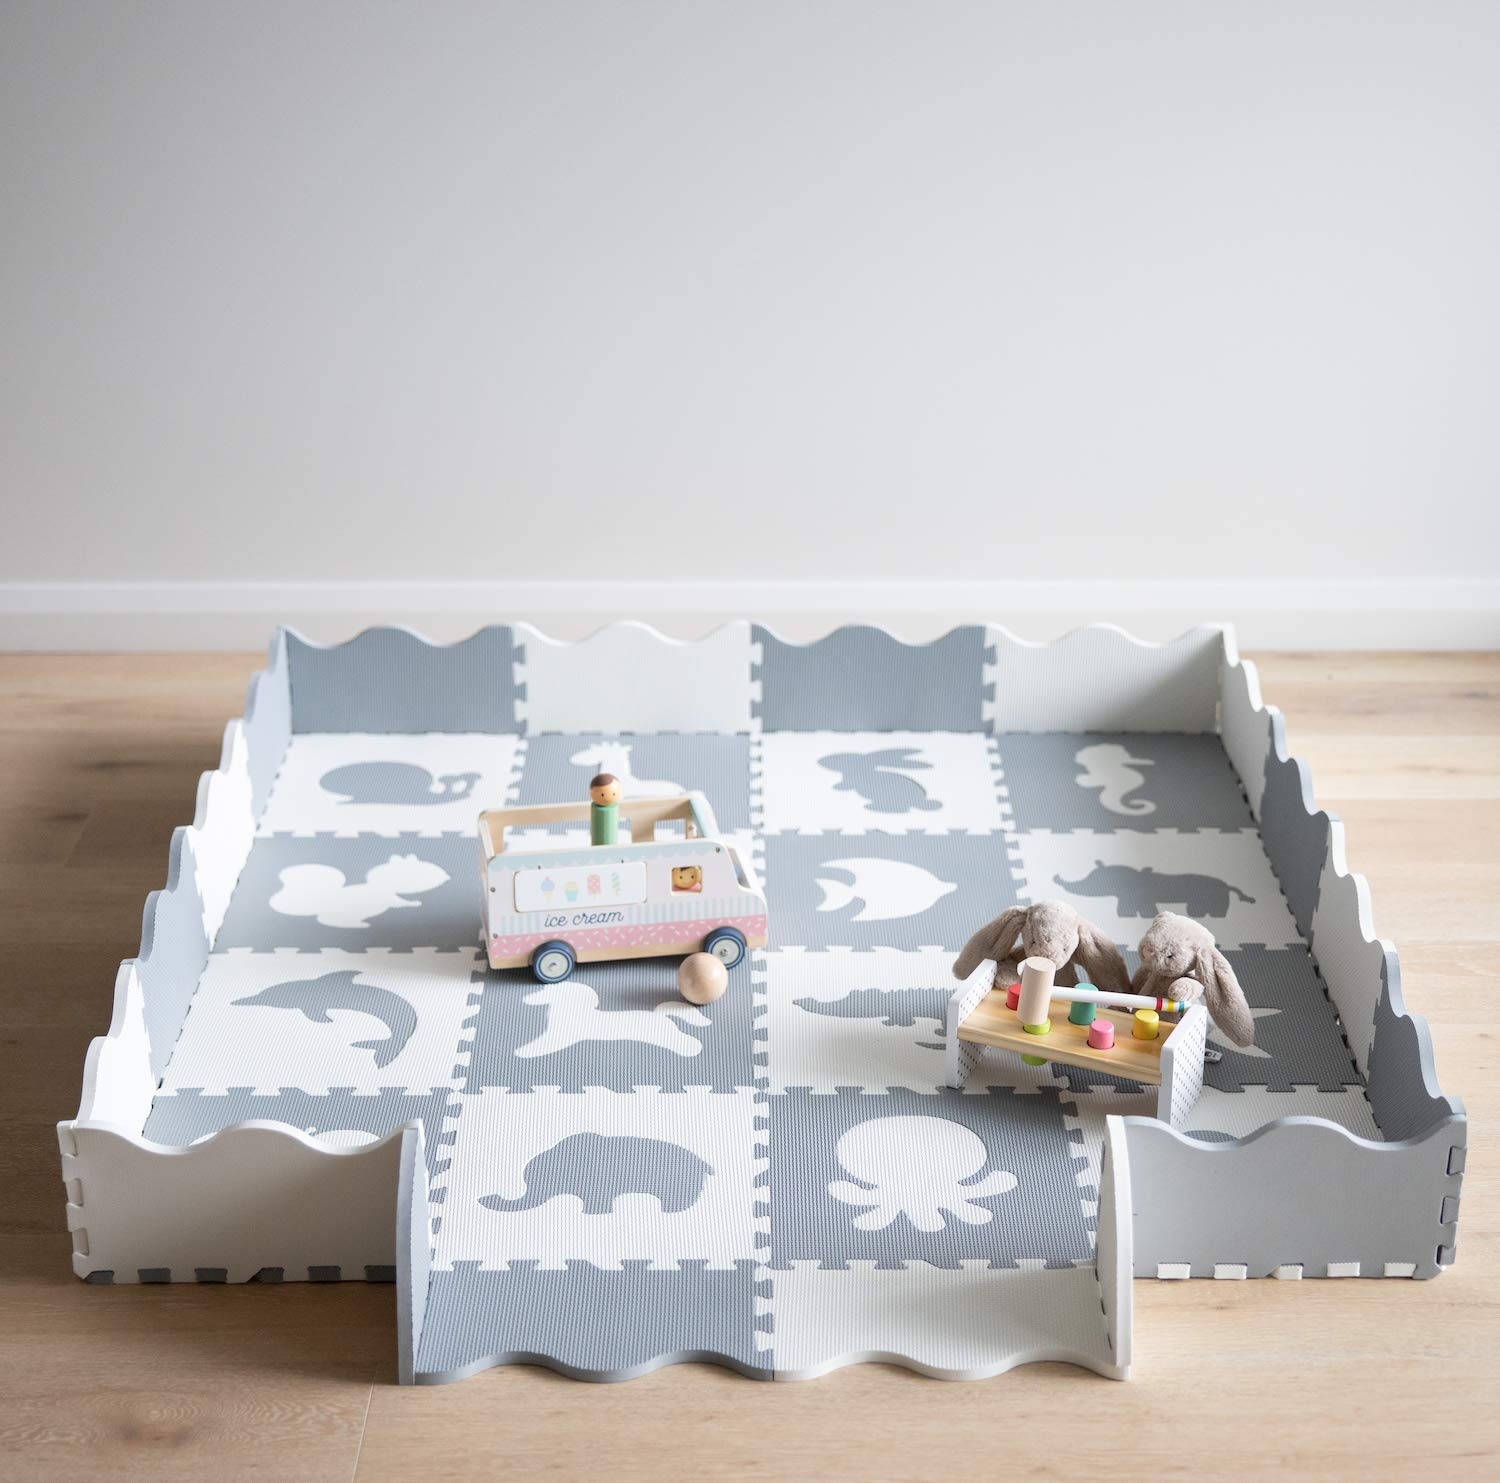 Baby Playmat with Fence by Oliver & Lola (Animal Series). 16 Interlocking Foam Floor Tiles Made of Baby-Safe Non-Toxic EVA. Crawling Mat for Nursery and Playpen.